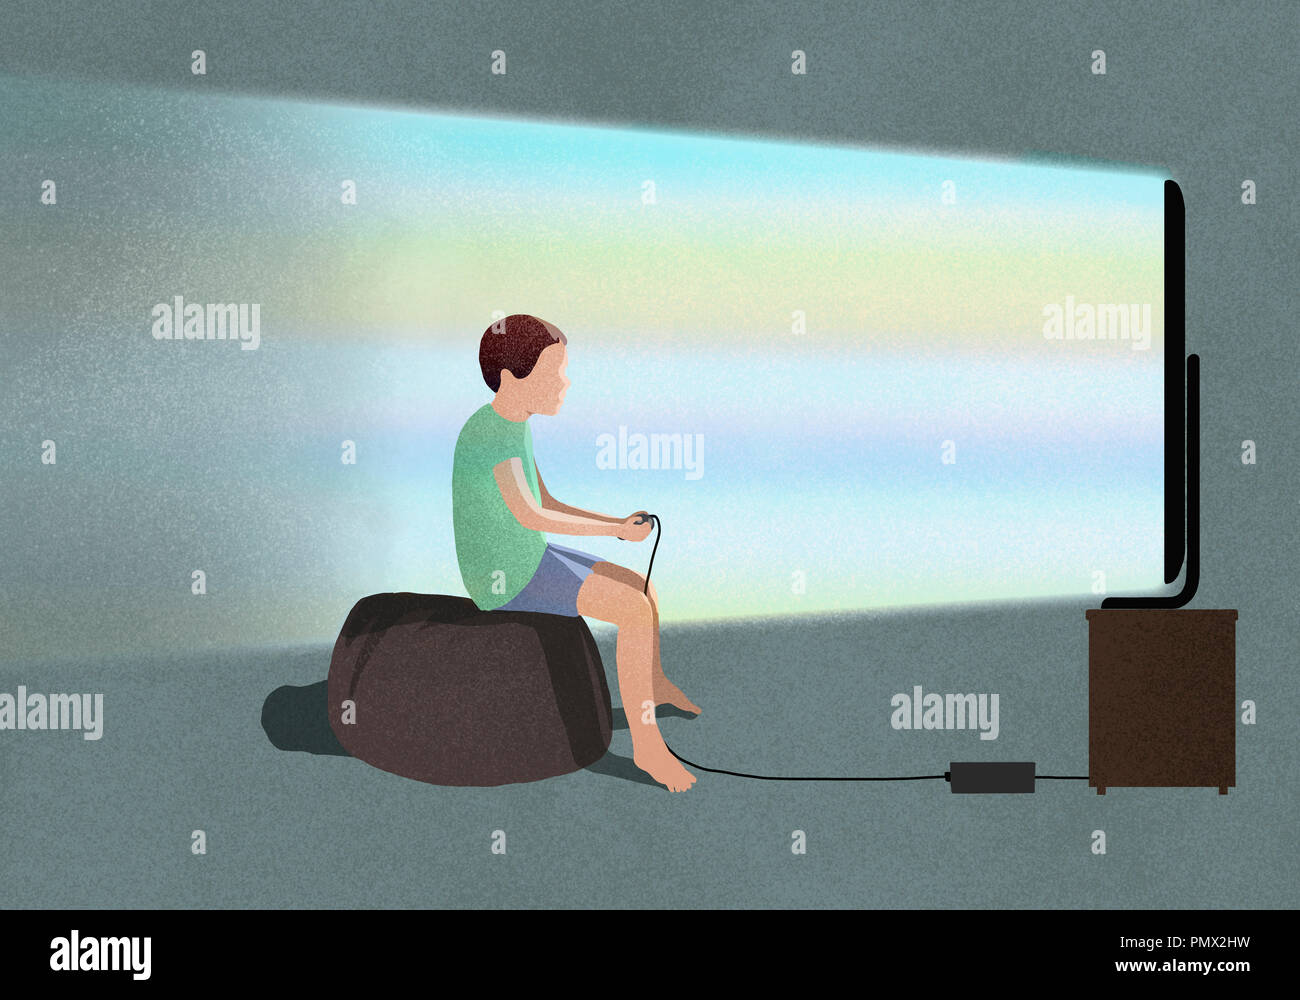 Boy playing video game at TV - Stock Image